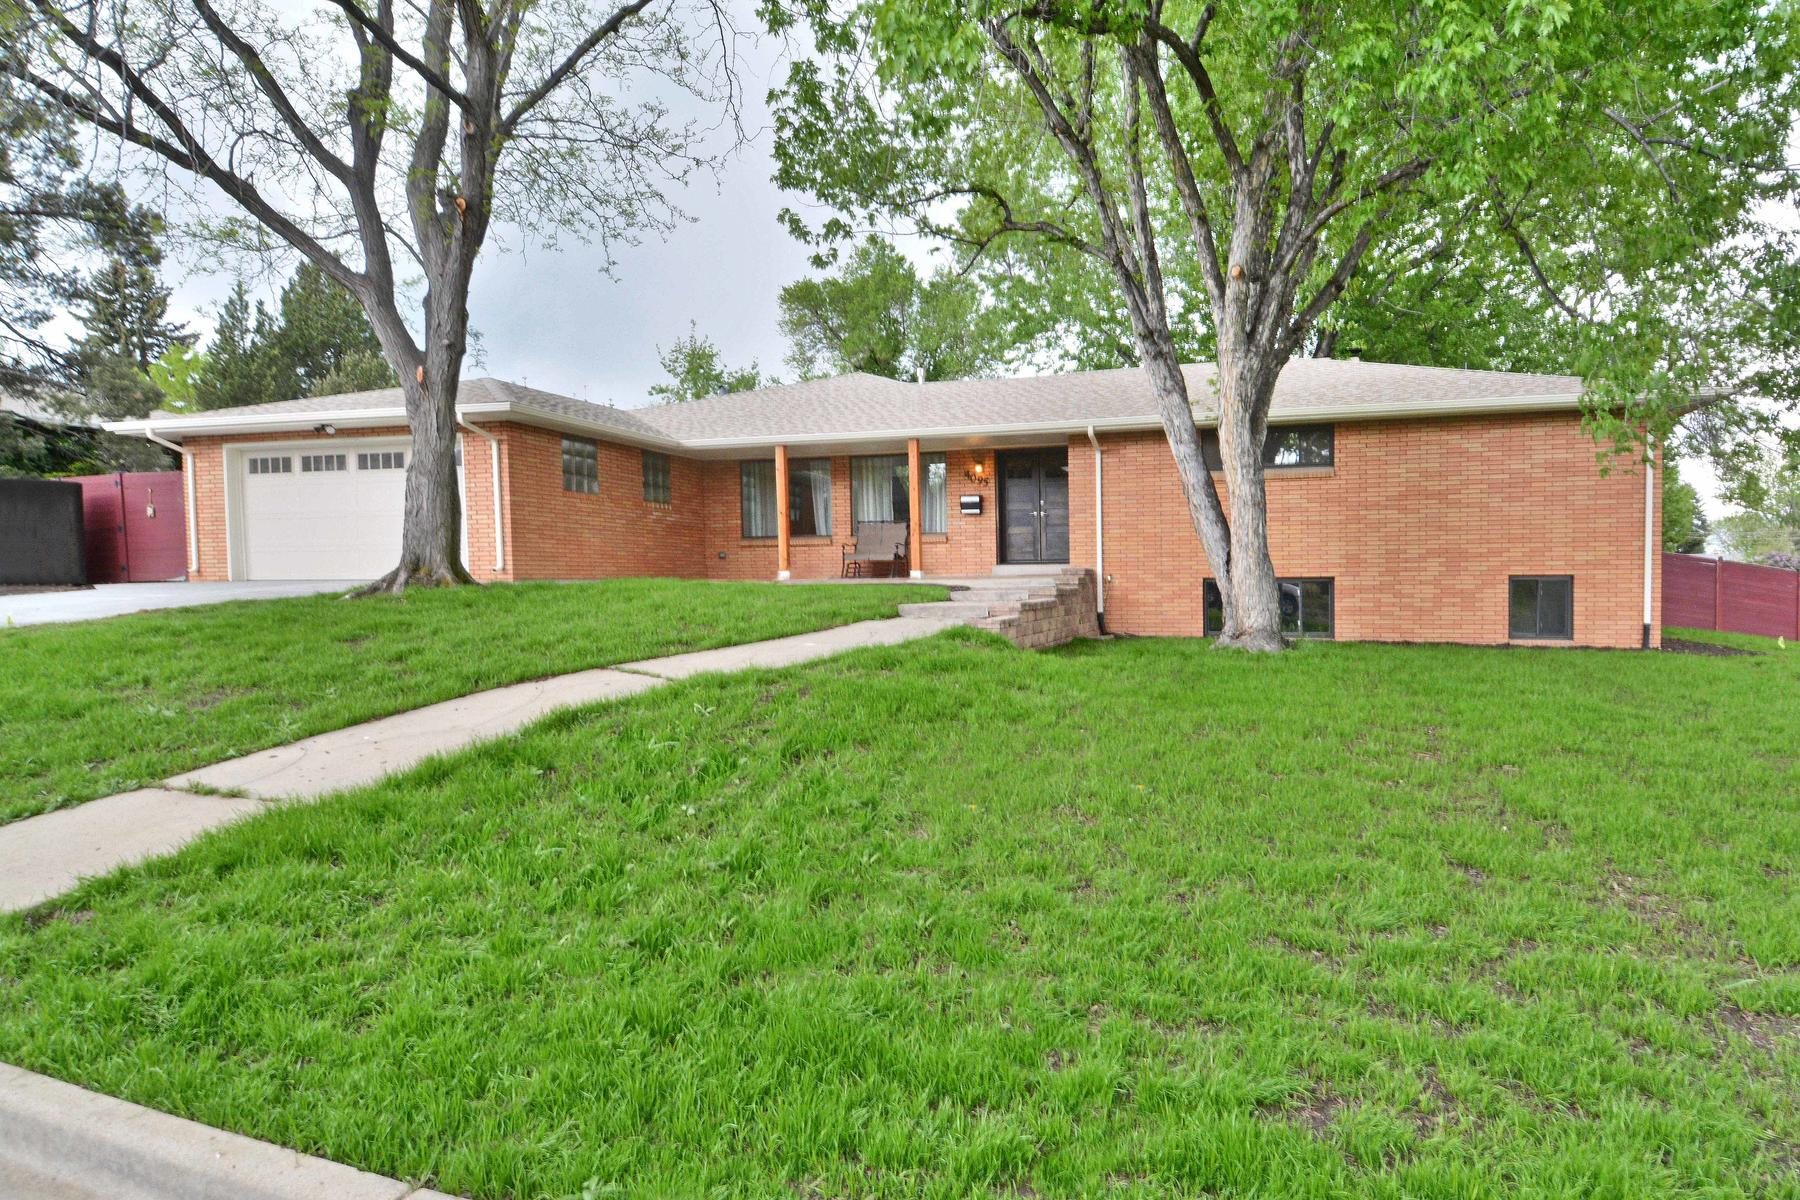 Single Family Home for Active at A True Forever Home In A Quiet Peaceful Neighborhood 4095 Dudley St Wheat Ridge, Colorado 80033 United States